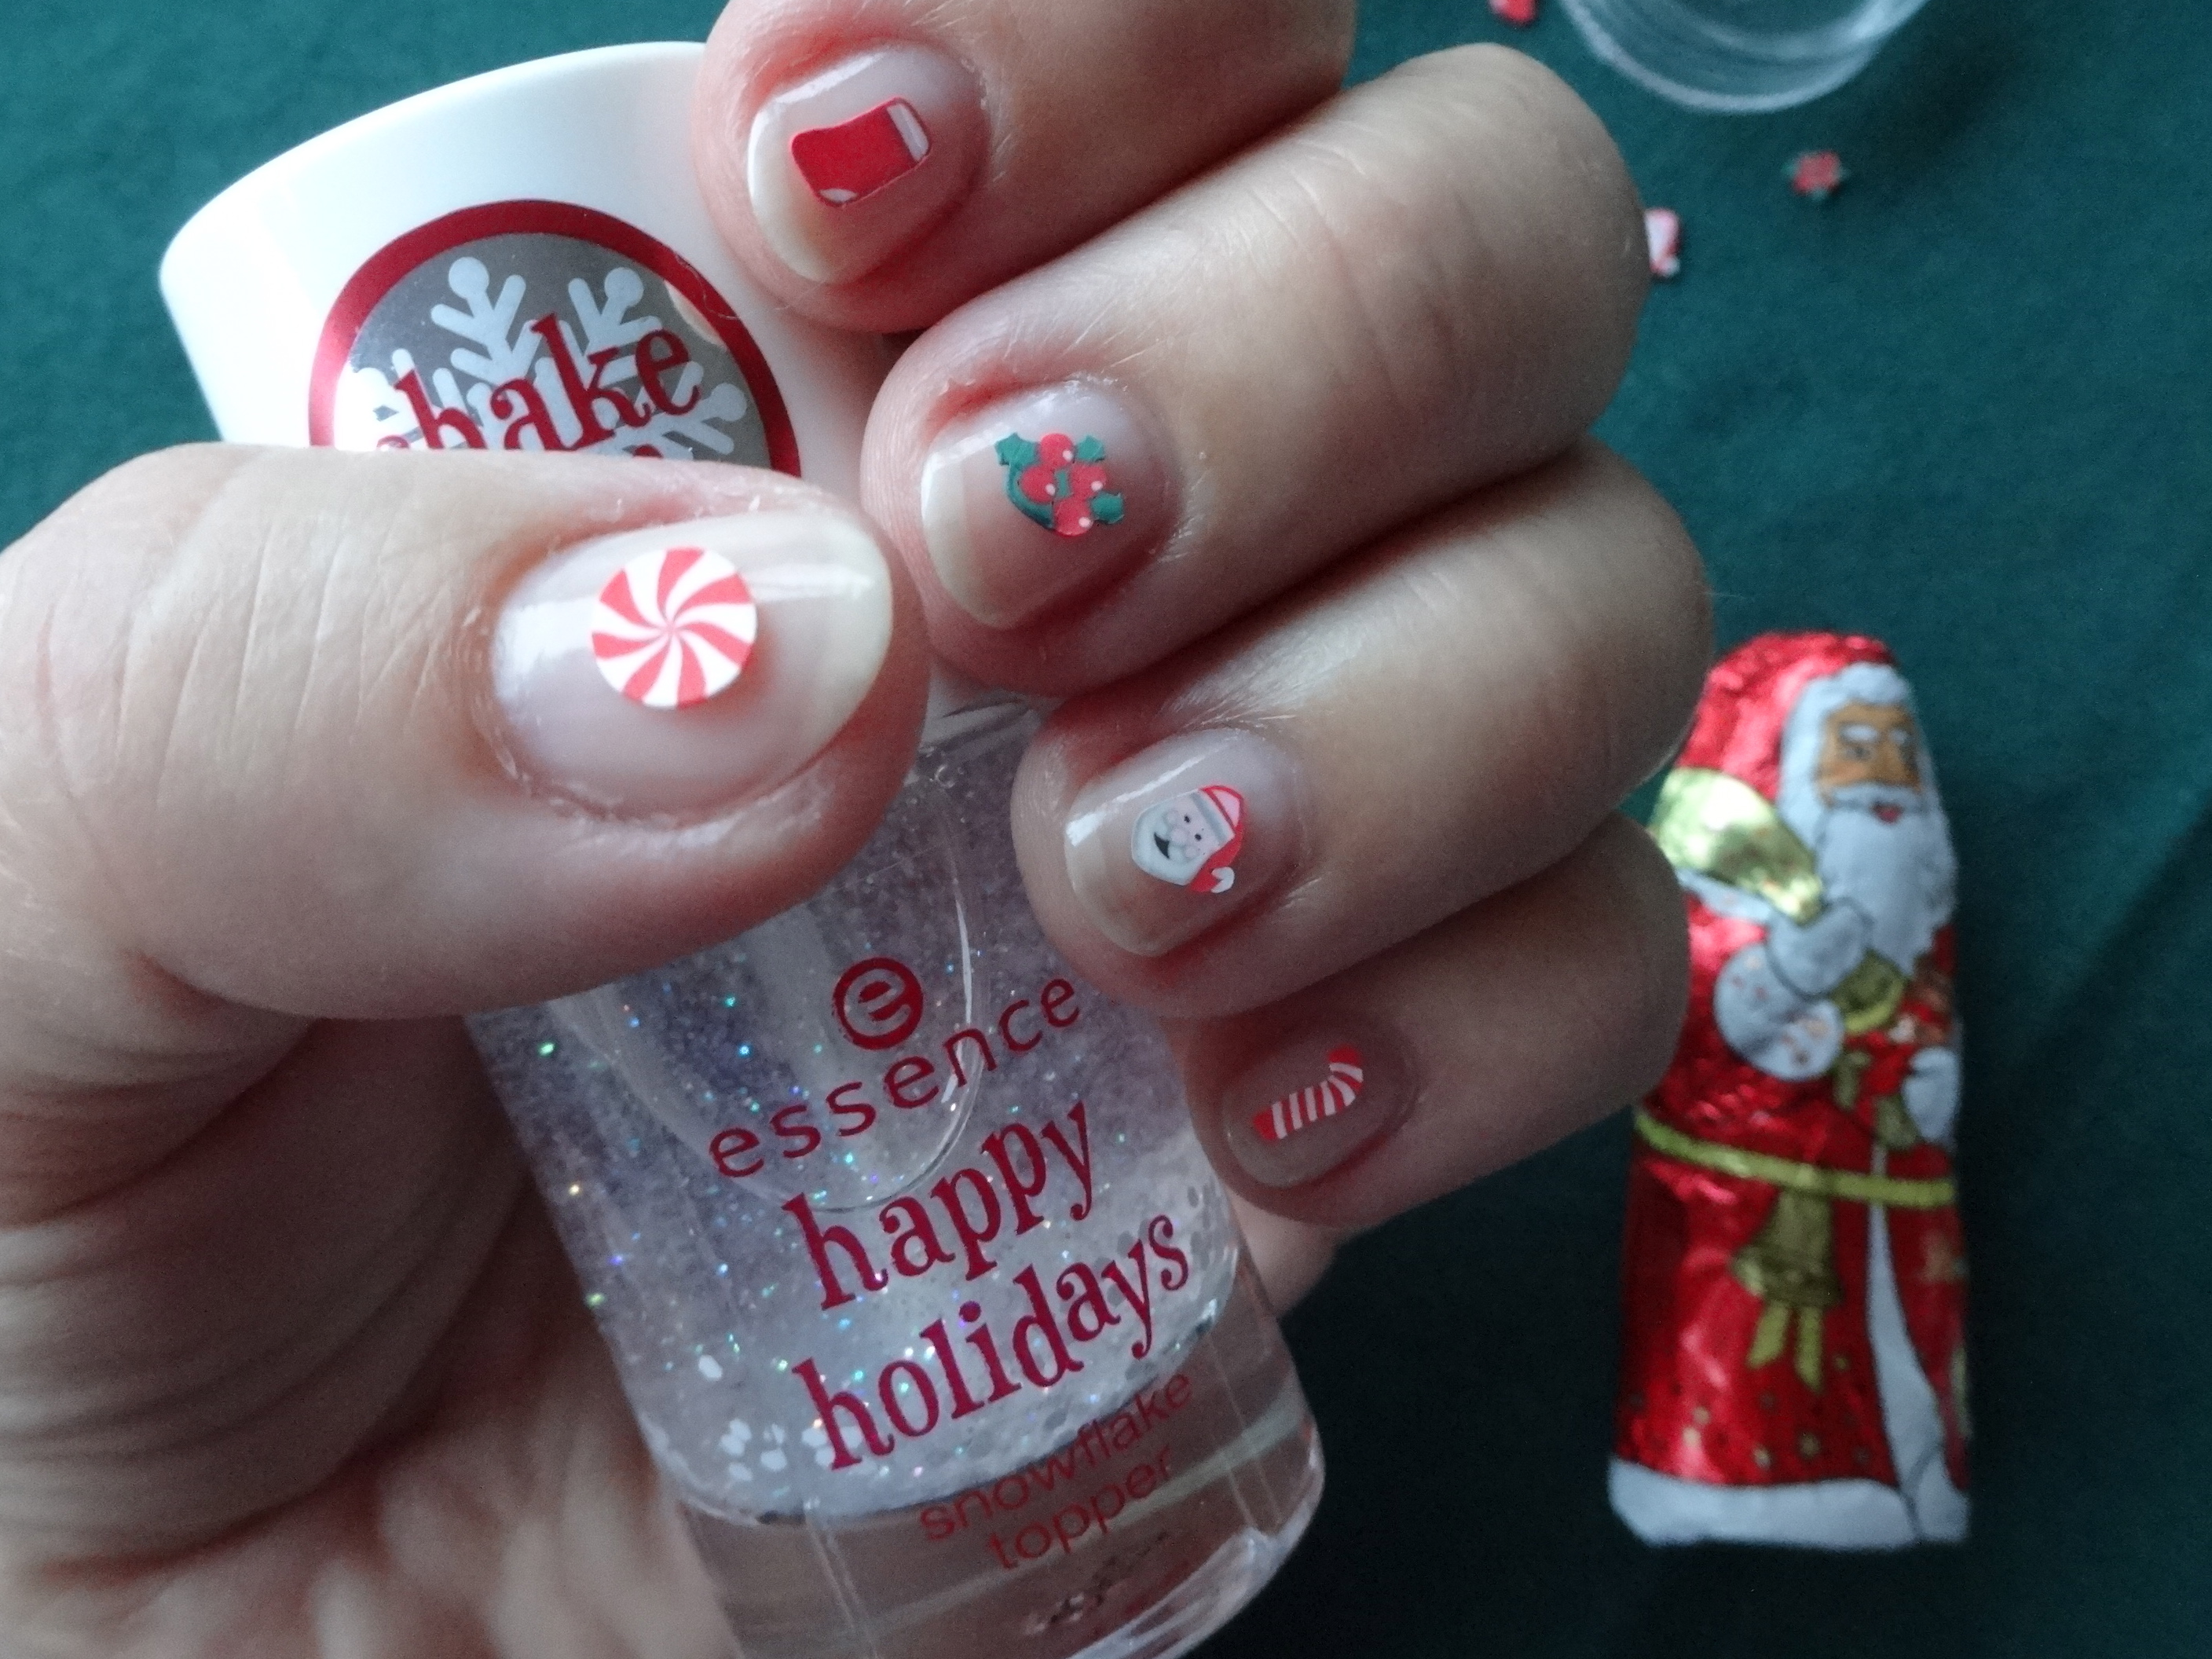 5 essens happy holidays nail sweets